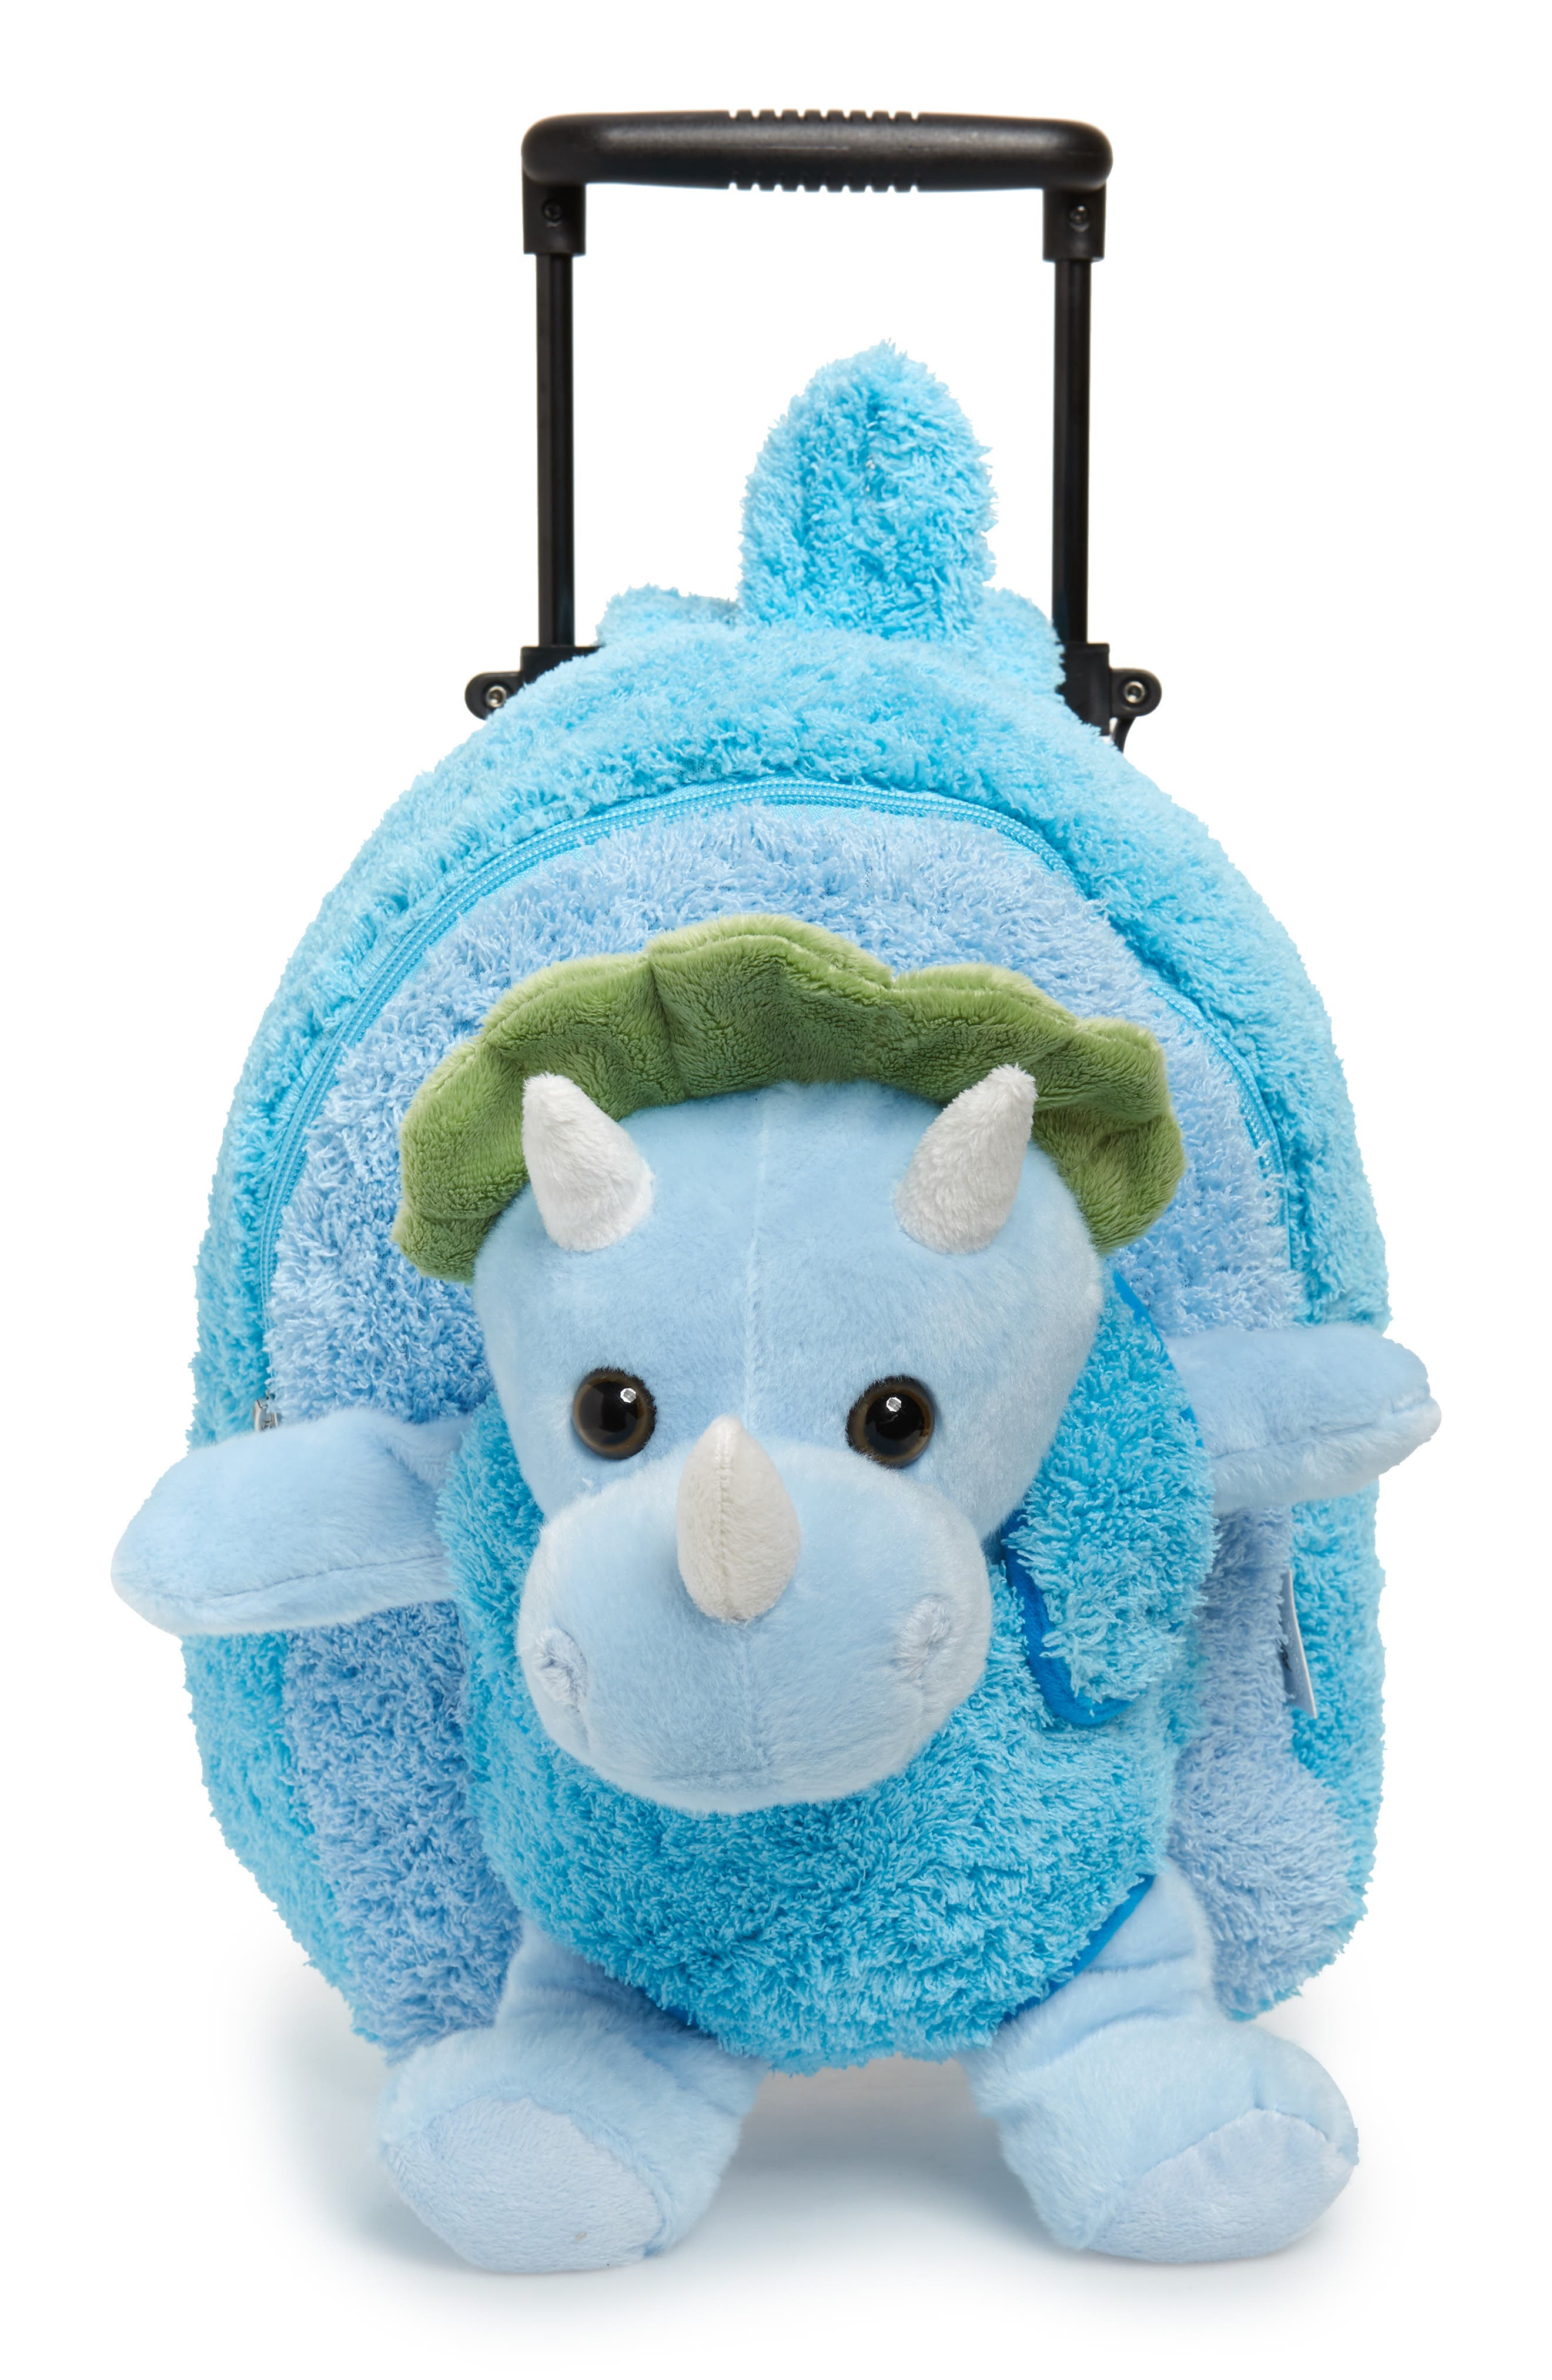 A dinosaur goes along for the ride on a plush wear-or-wheel backpack bag perfect for small travelers staying overnight at grandma and grandpa\\\'s house. When your little one gets to their destination, the dino friend can be detached and is all ready to snuggle and play. Style Name: Popatu Dinosaur Trolley Backpack (Kids). Style Number: 5866803. Available in stores.